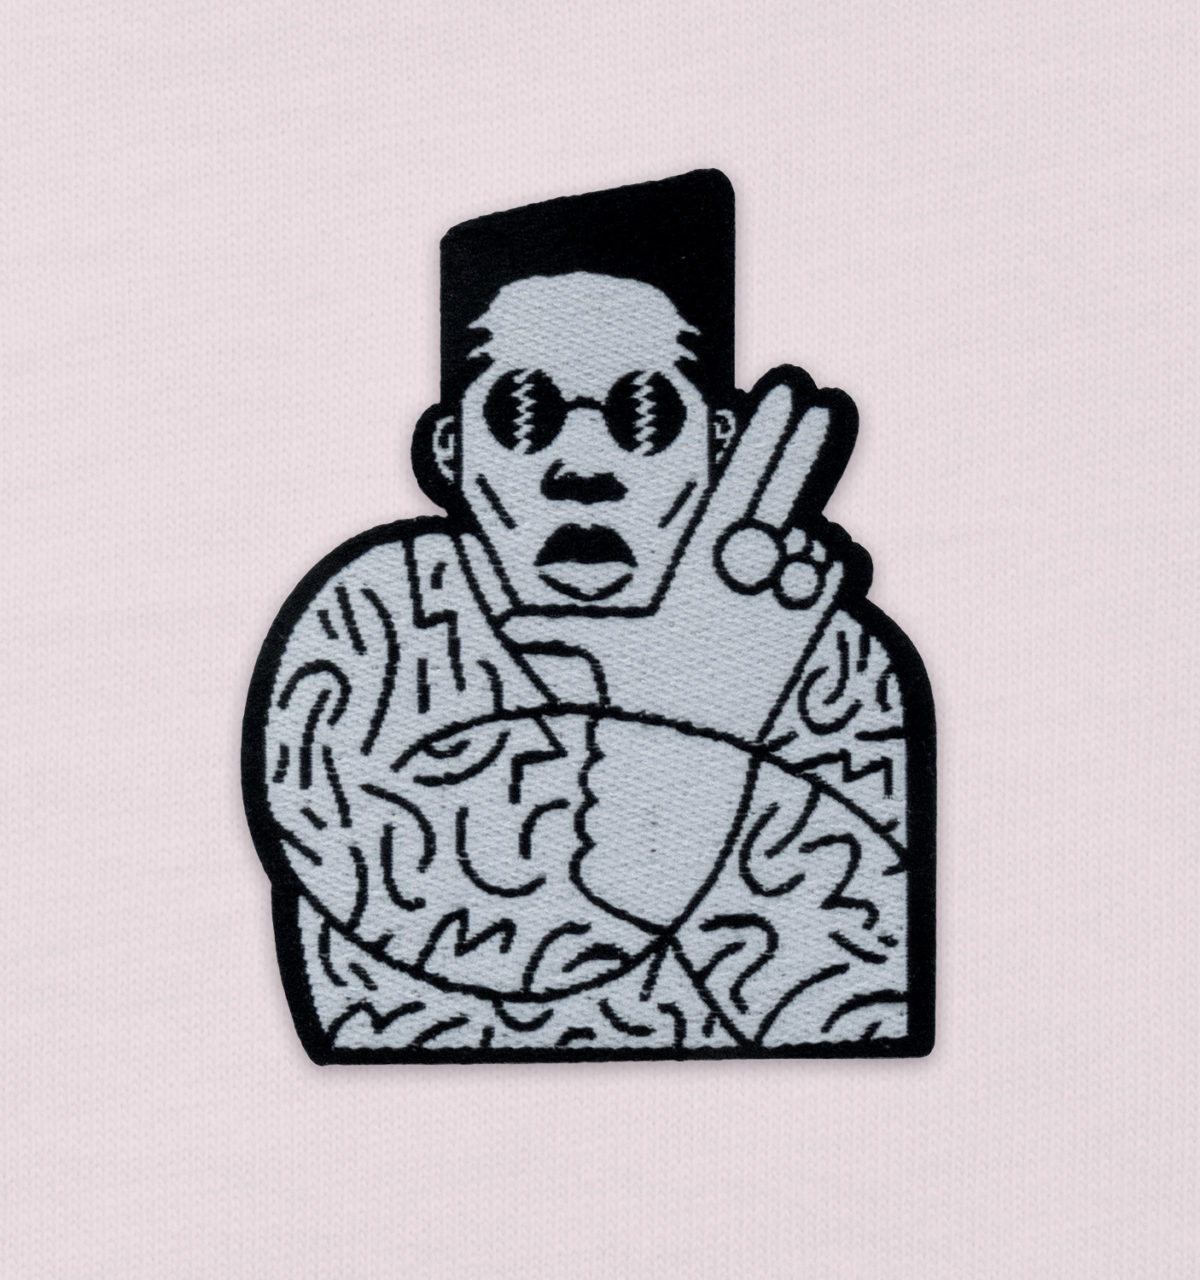 Shabba T-shirt (pink) patch detail by GABE